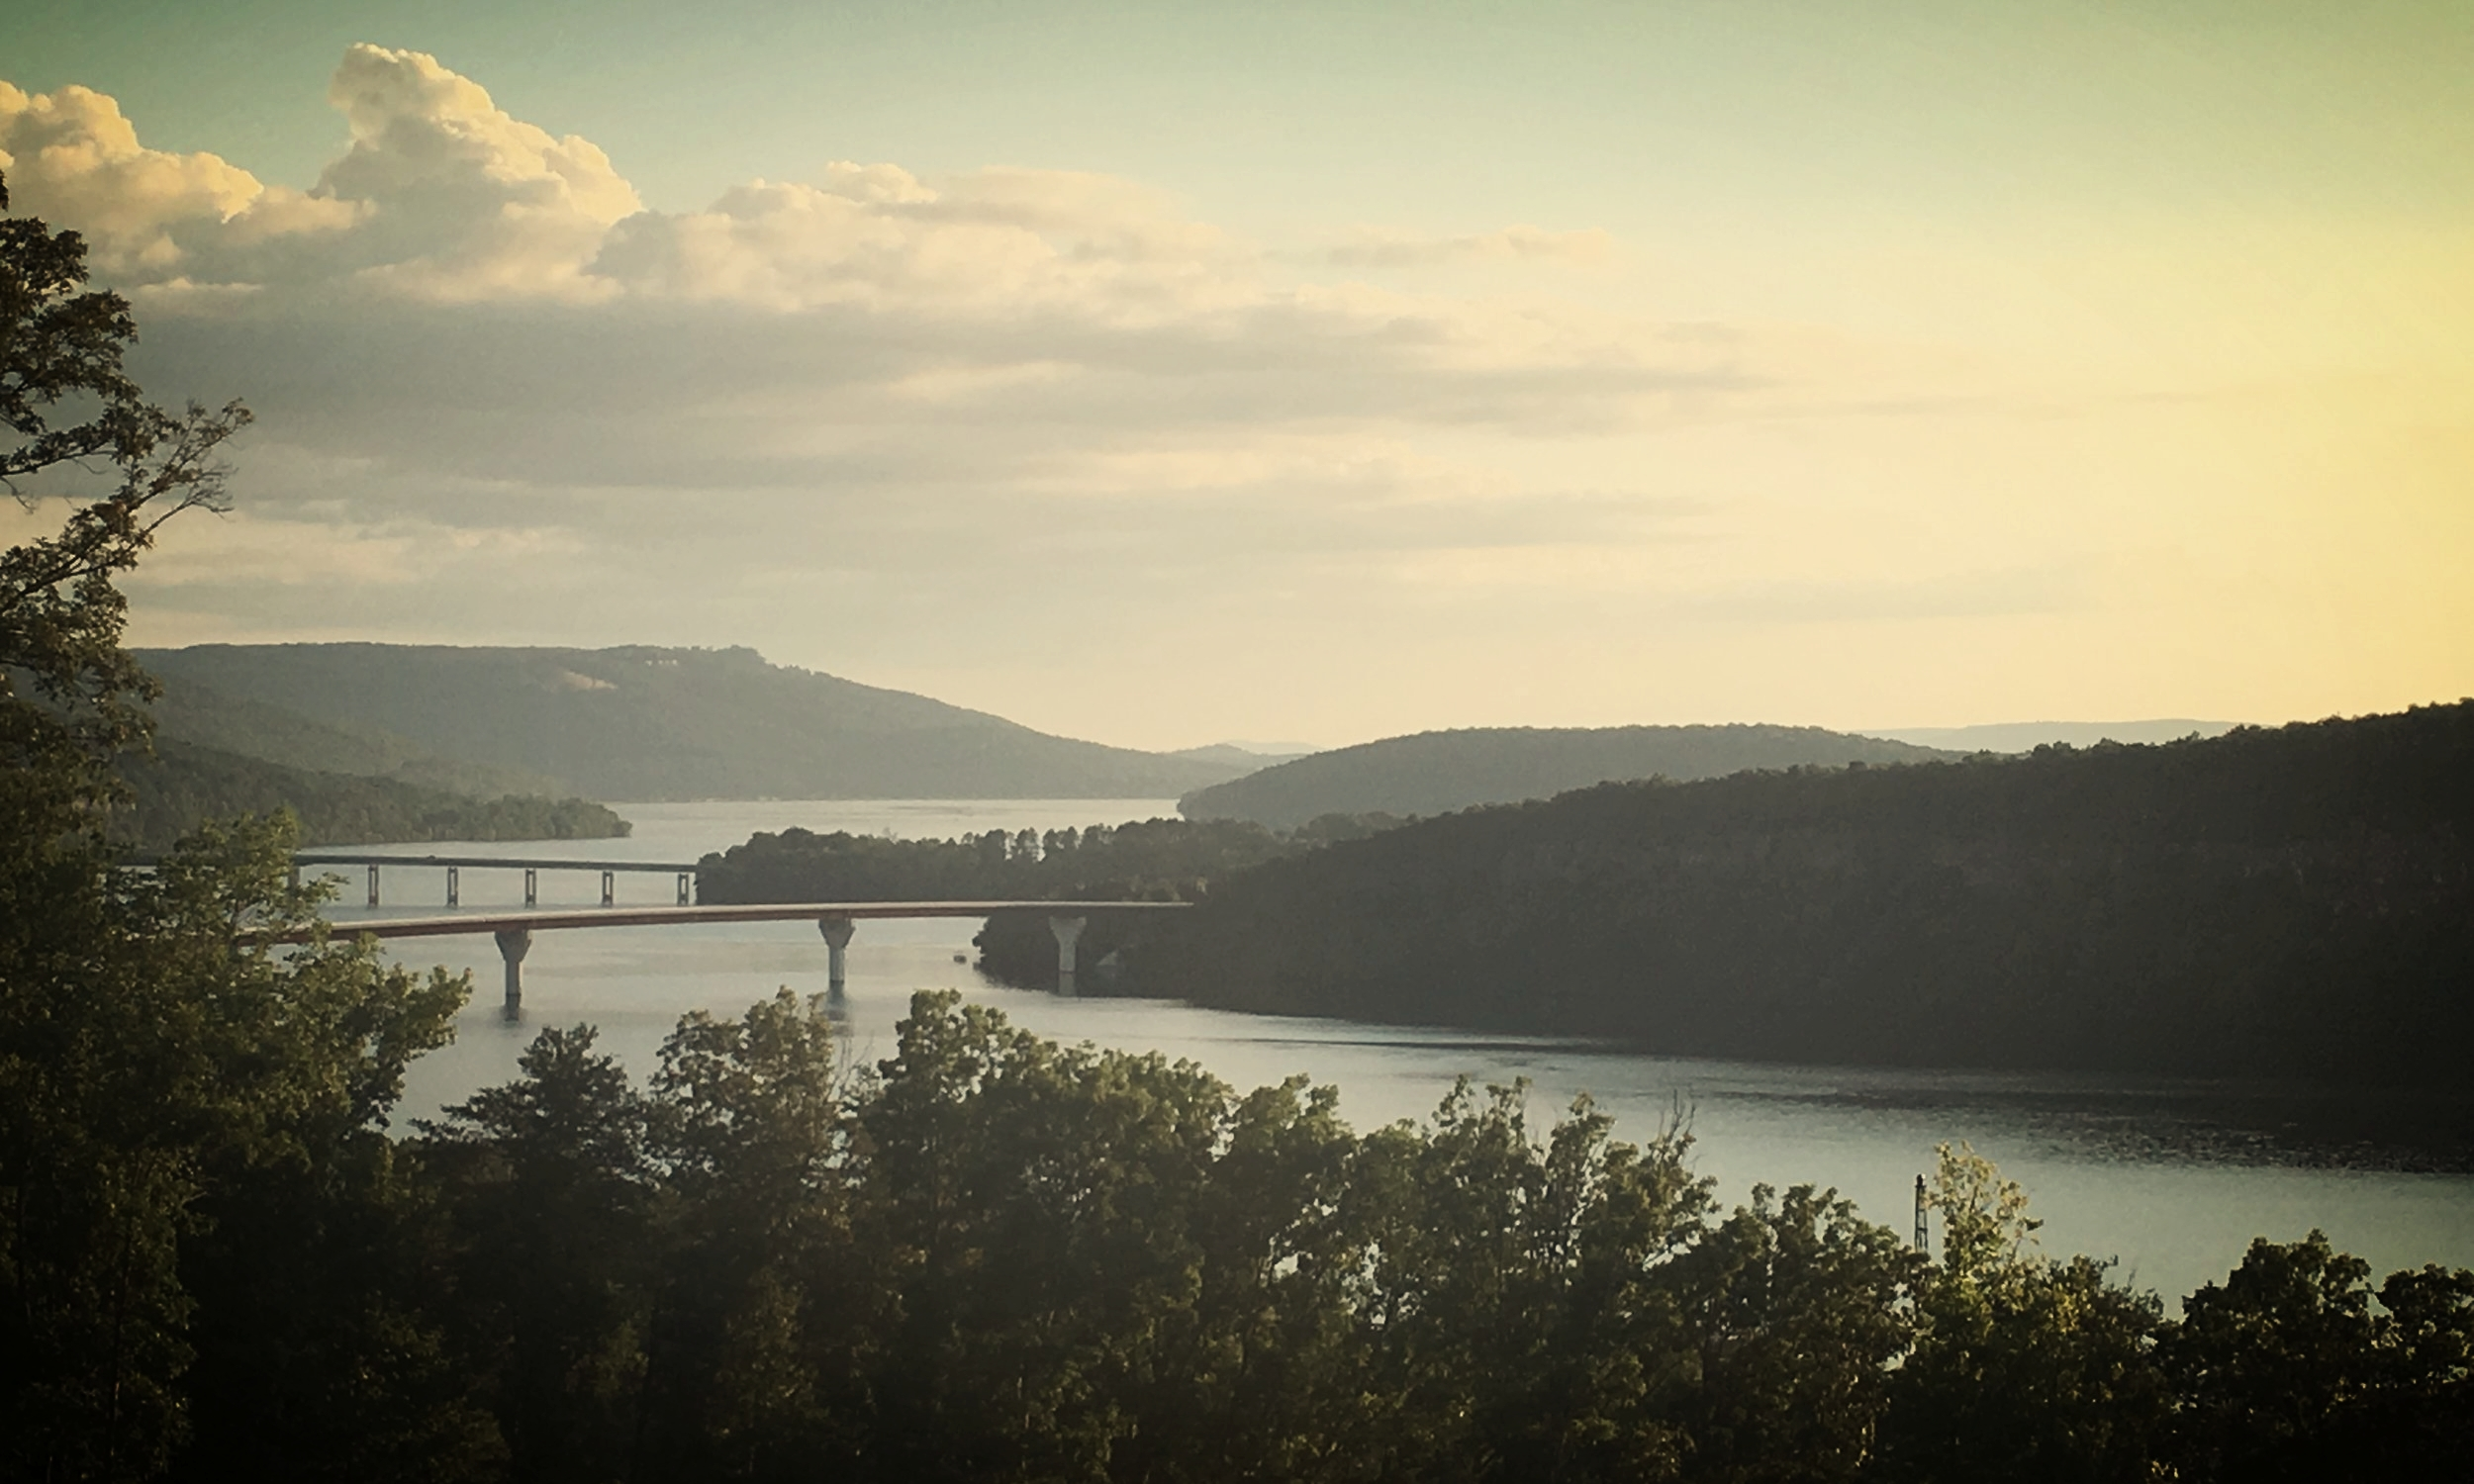 Evening view of the Tennessee River from Look Out Winery, 20 miles outside of Chattanooga, Tennessee. [ Photo - Anna Caro]